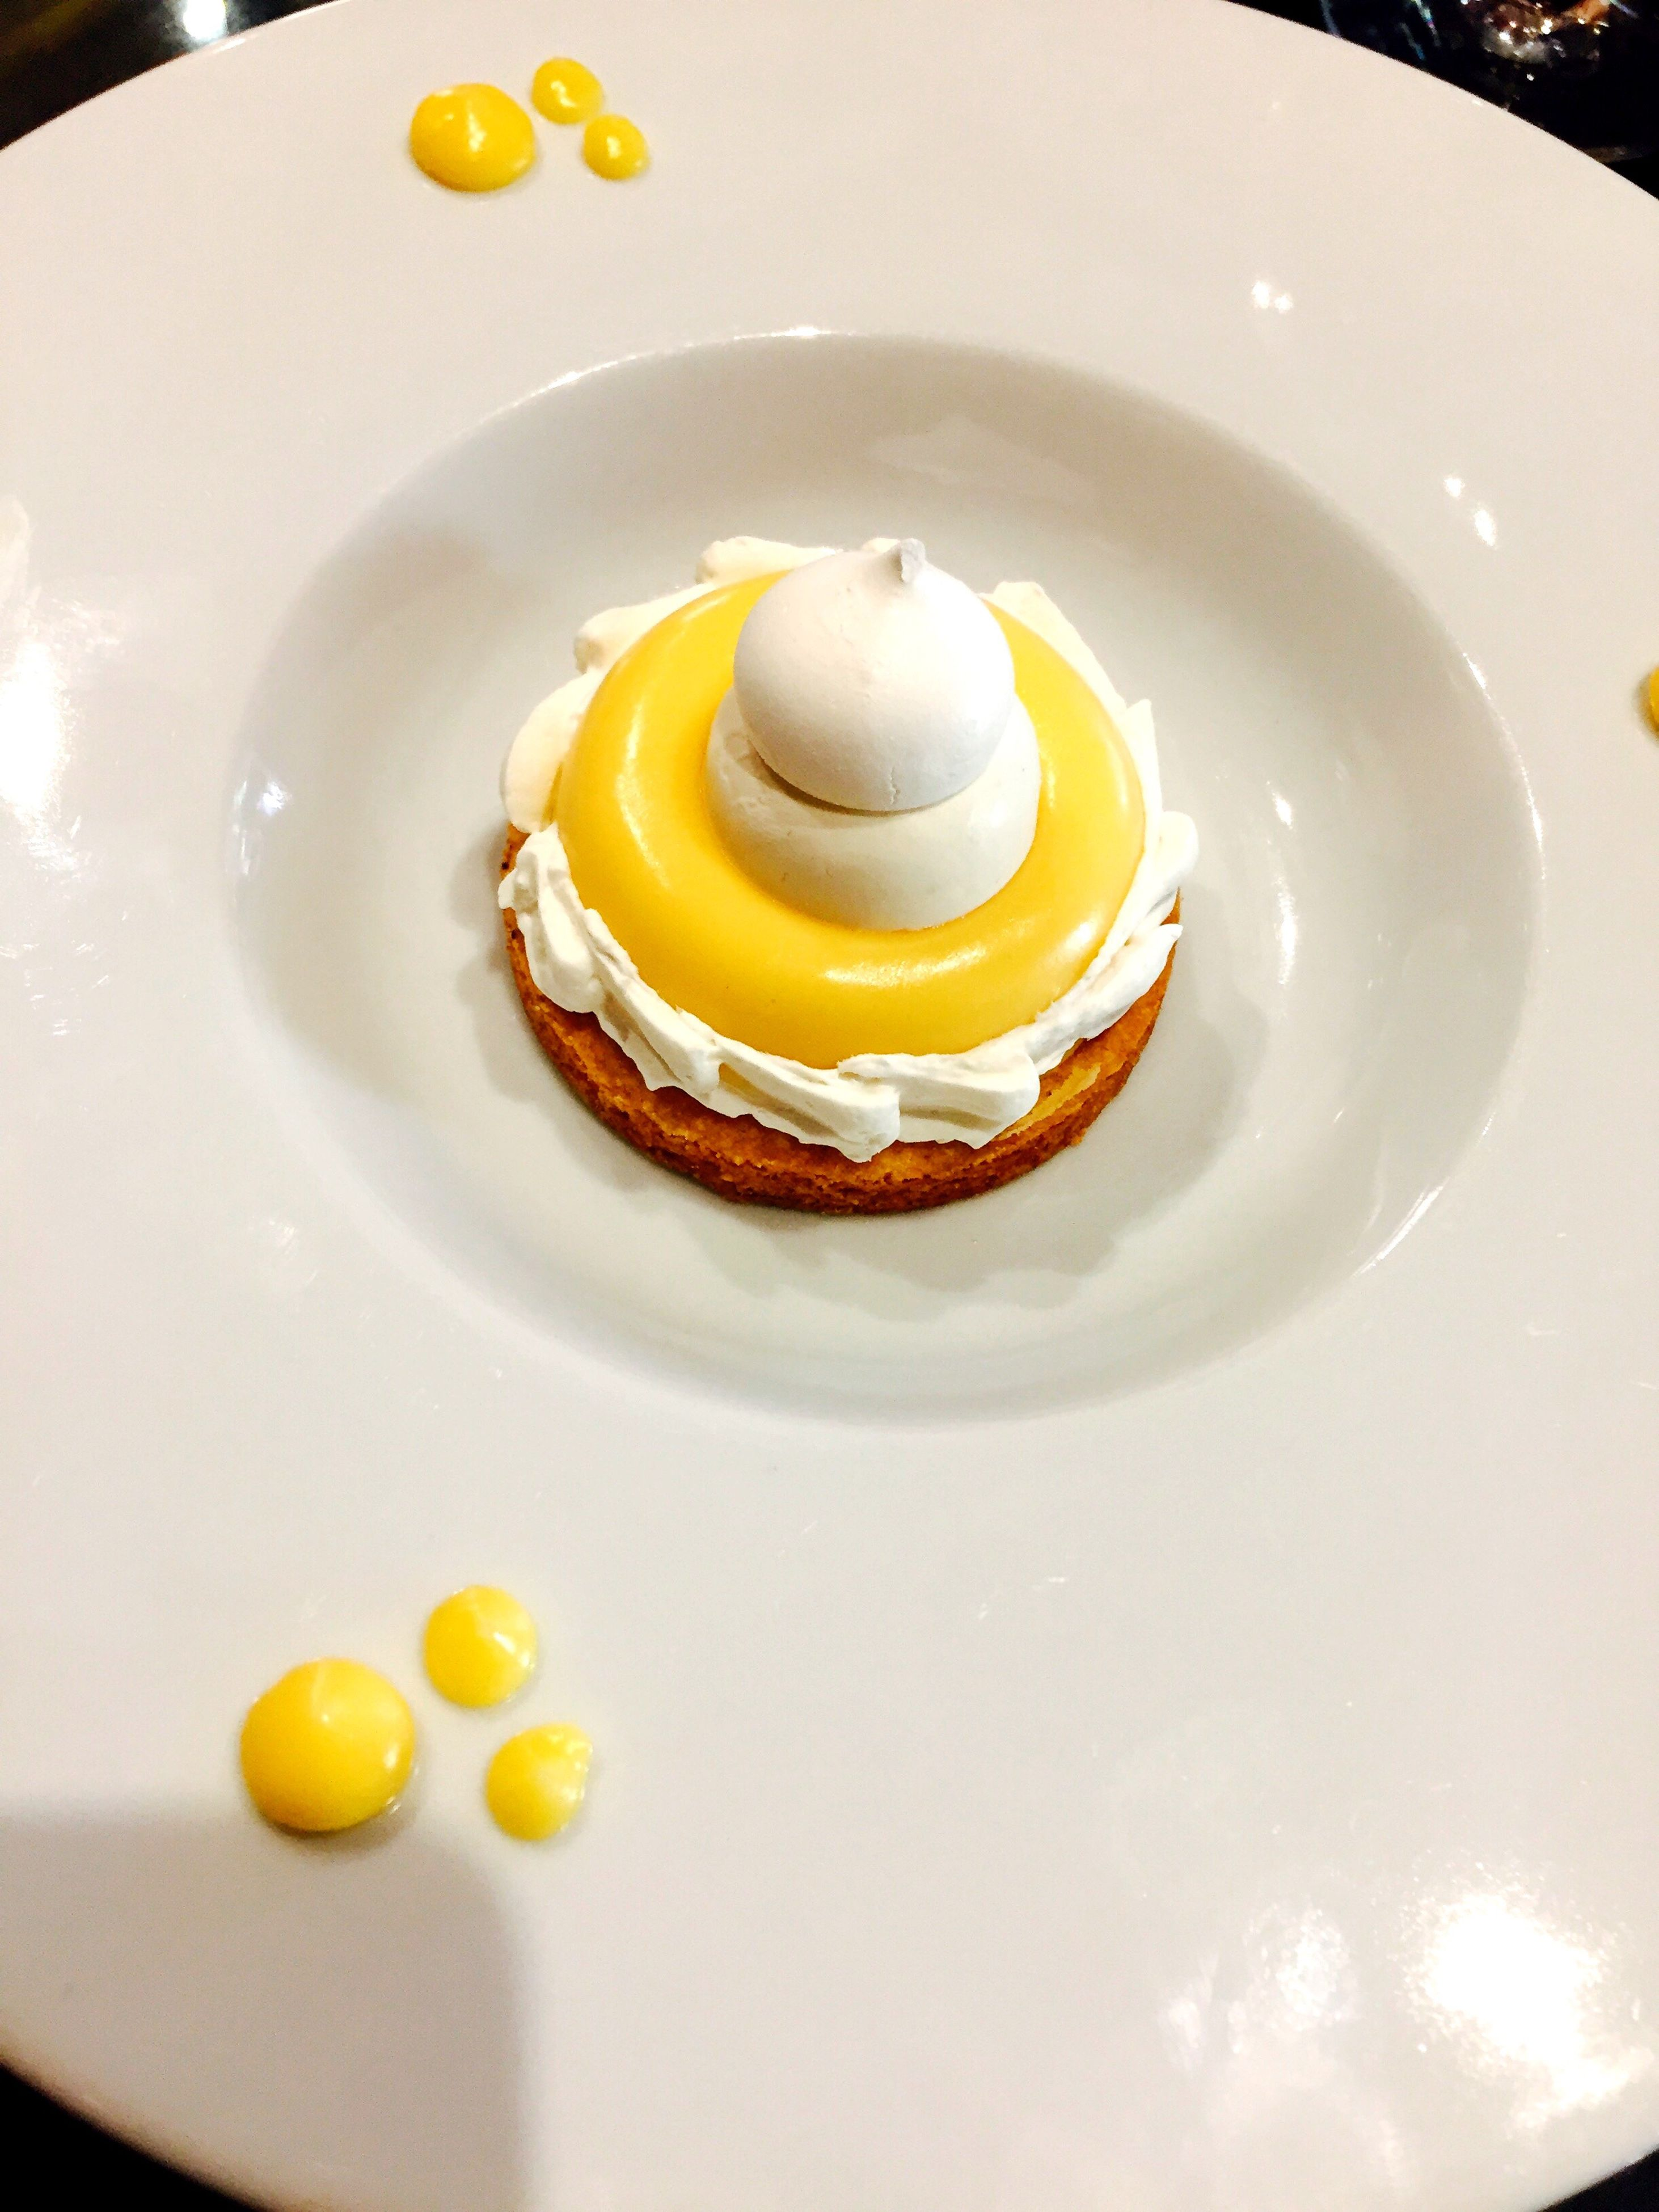 plate, food, food and drink, ready-to-eat, yellow, sweet food, egg yolk, serving size, close-up, freshness, indoors, no people